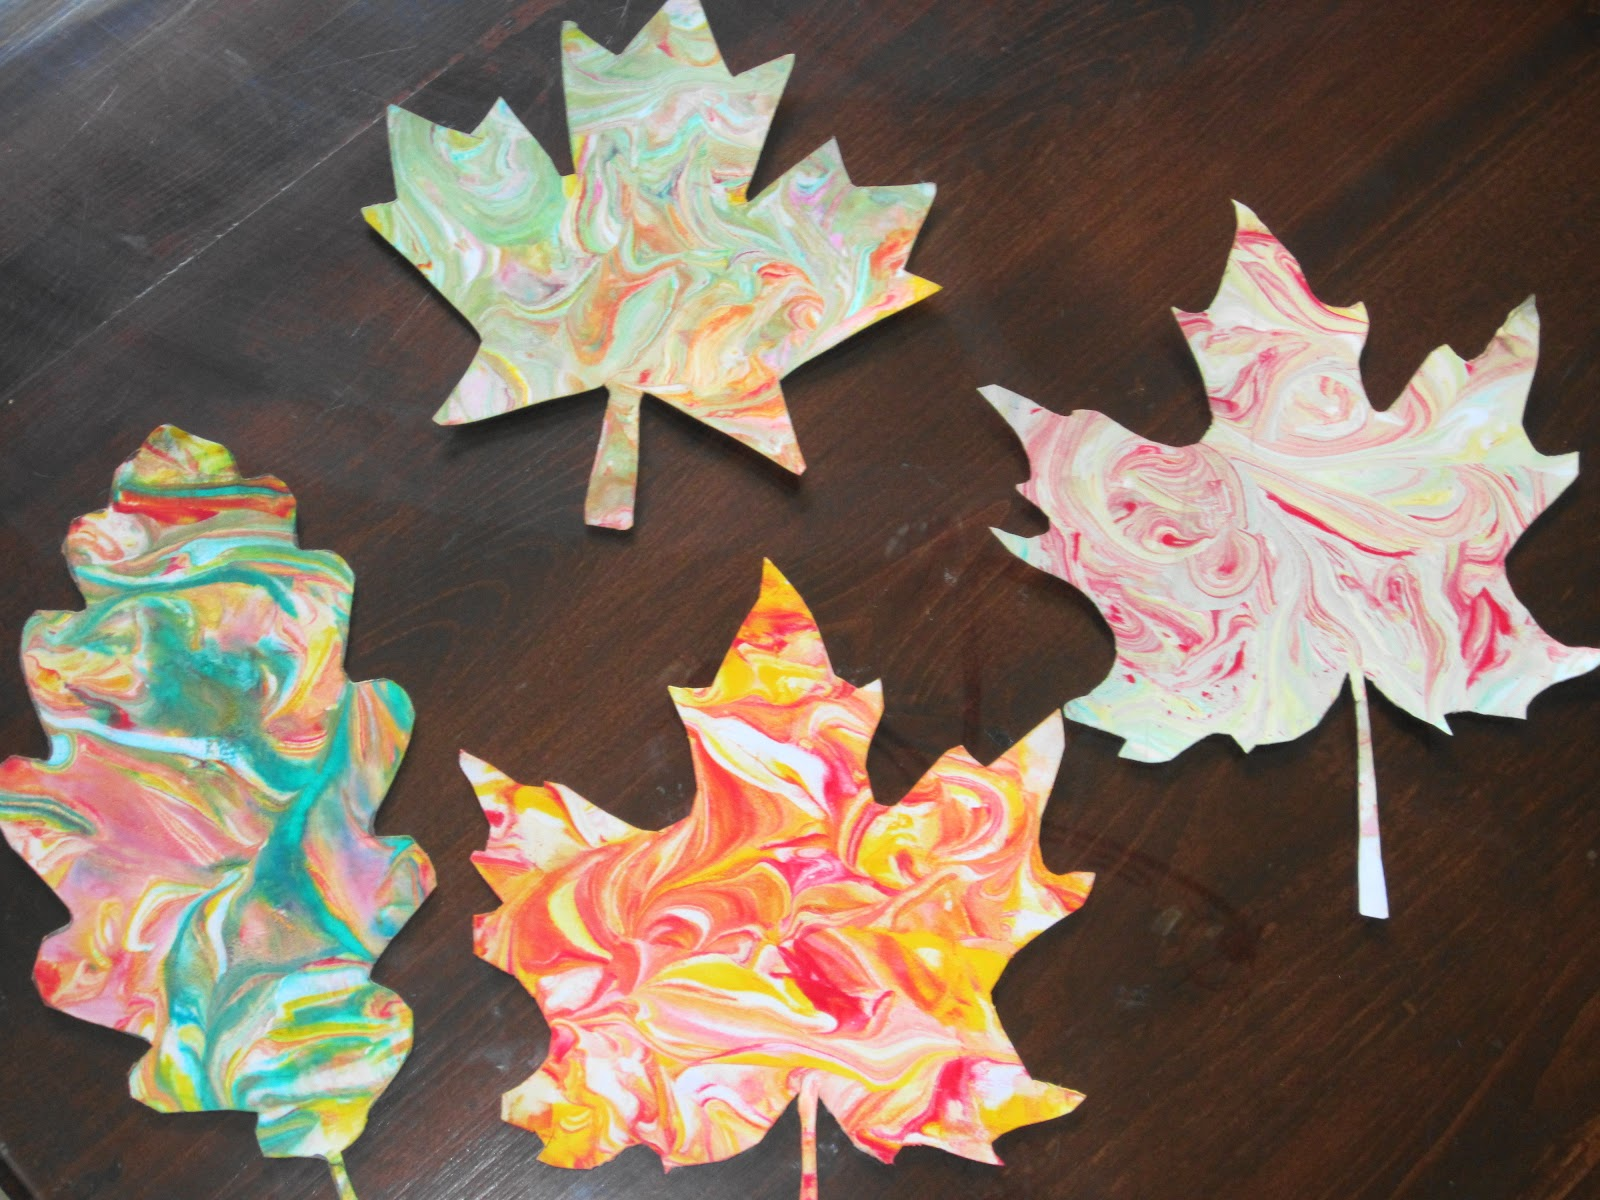 Teaching With Tlc Create Marbled Fall Leaves With Shaving Cream